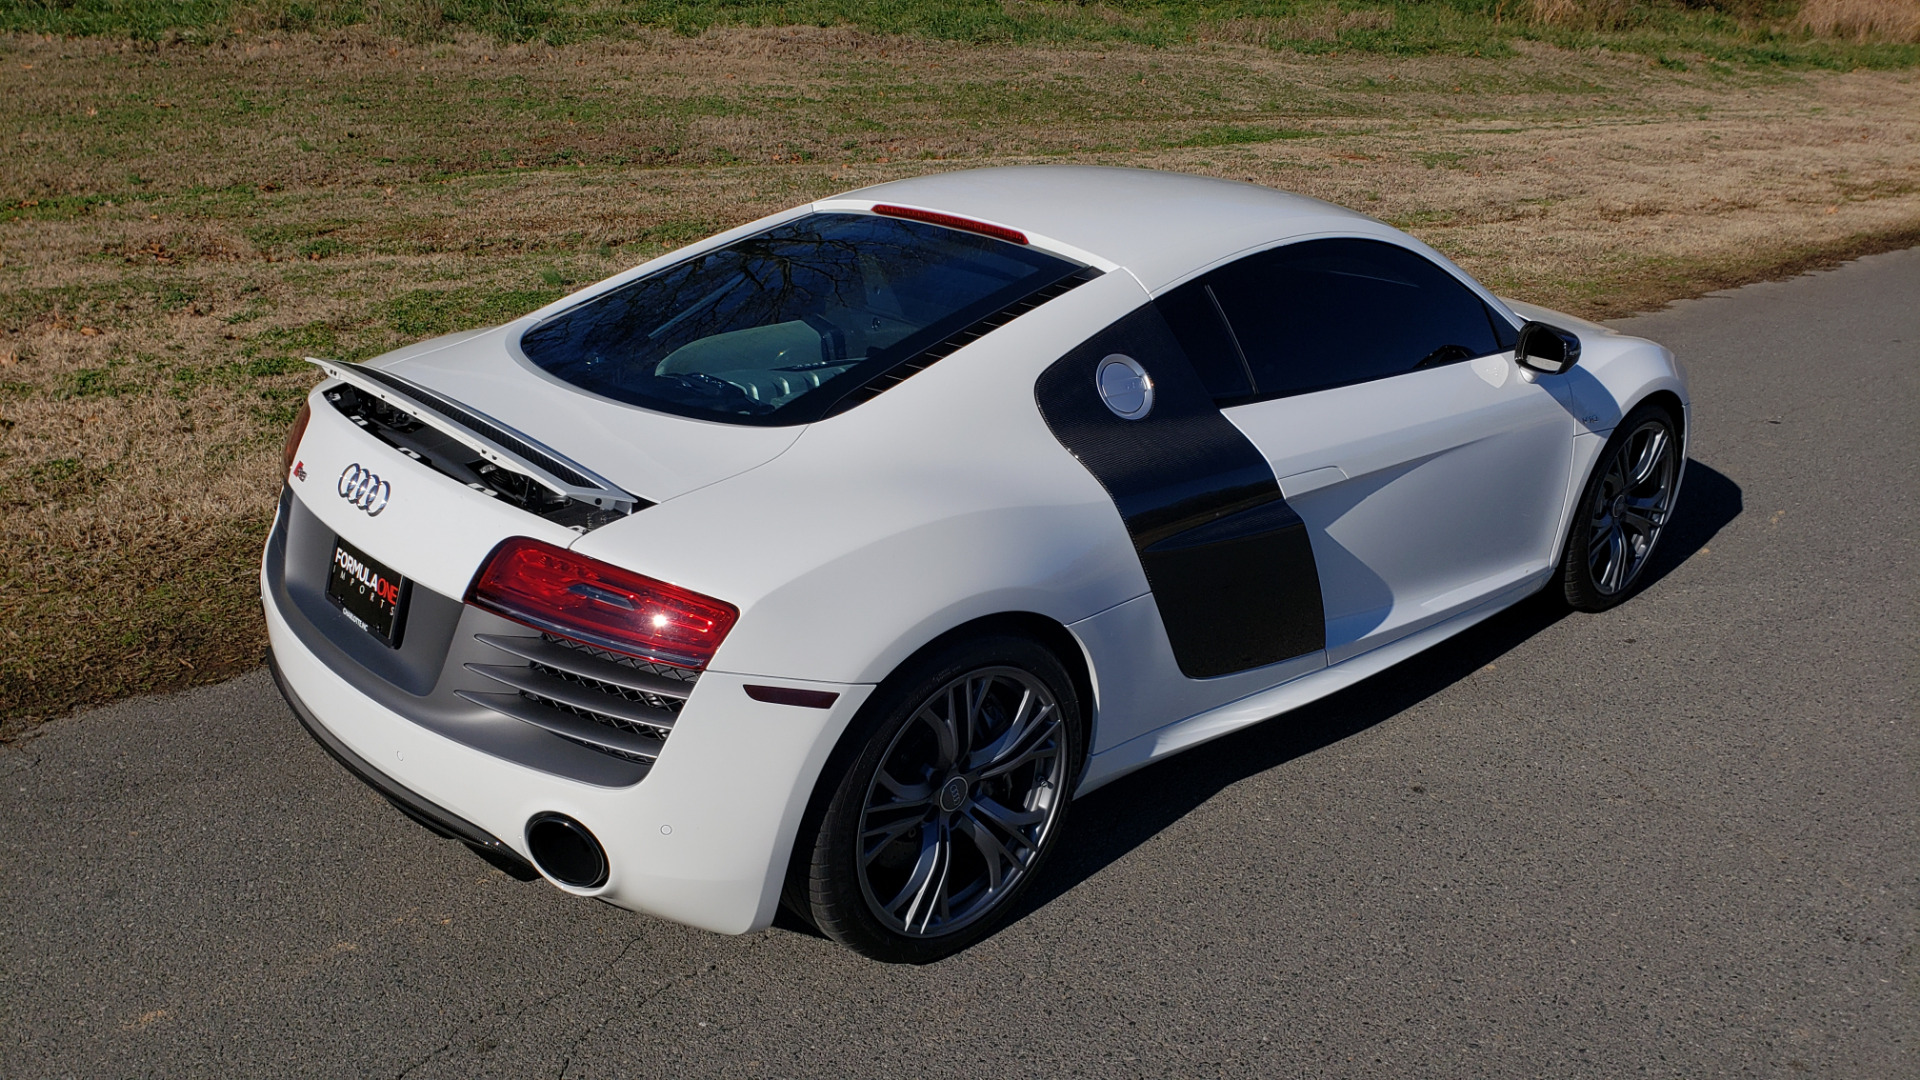 Used 2015 Audi R8 V10 PLUS / S-TRONIC / B&O SOUND / SPORT EXH / REARVIEW for sale Sold at Formula Imports in Charlotte NC 28227 14